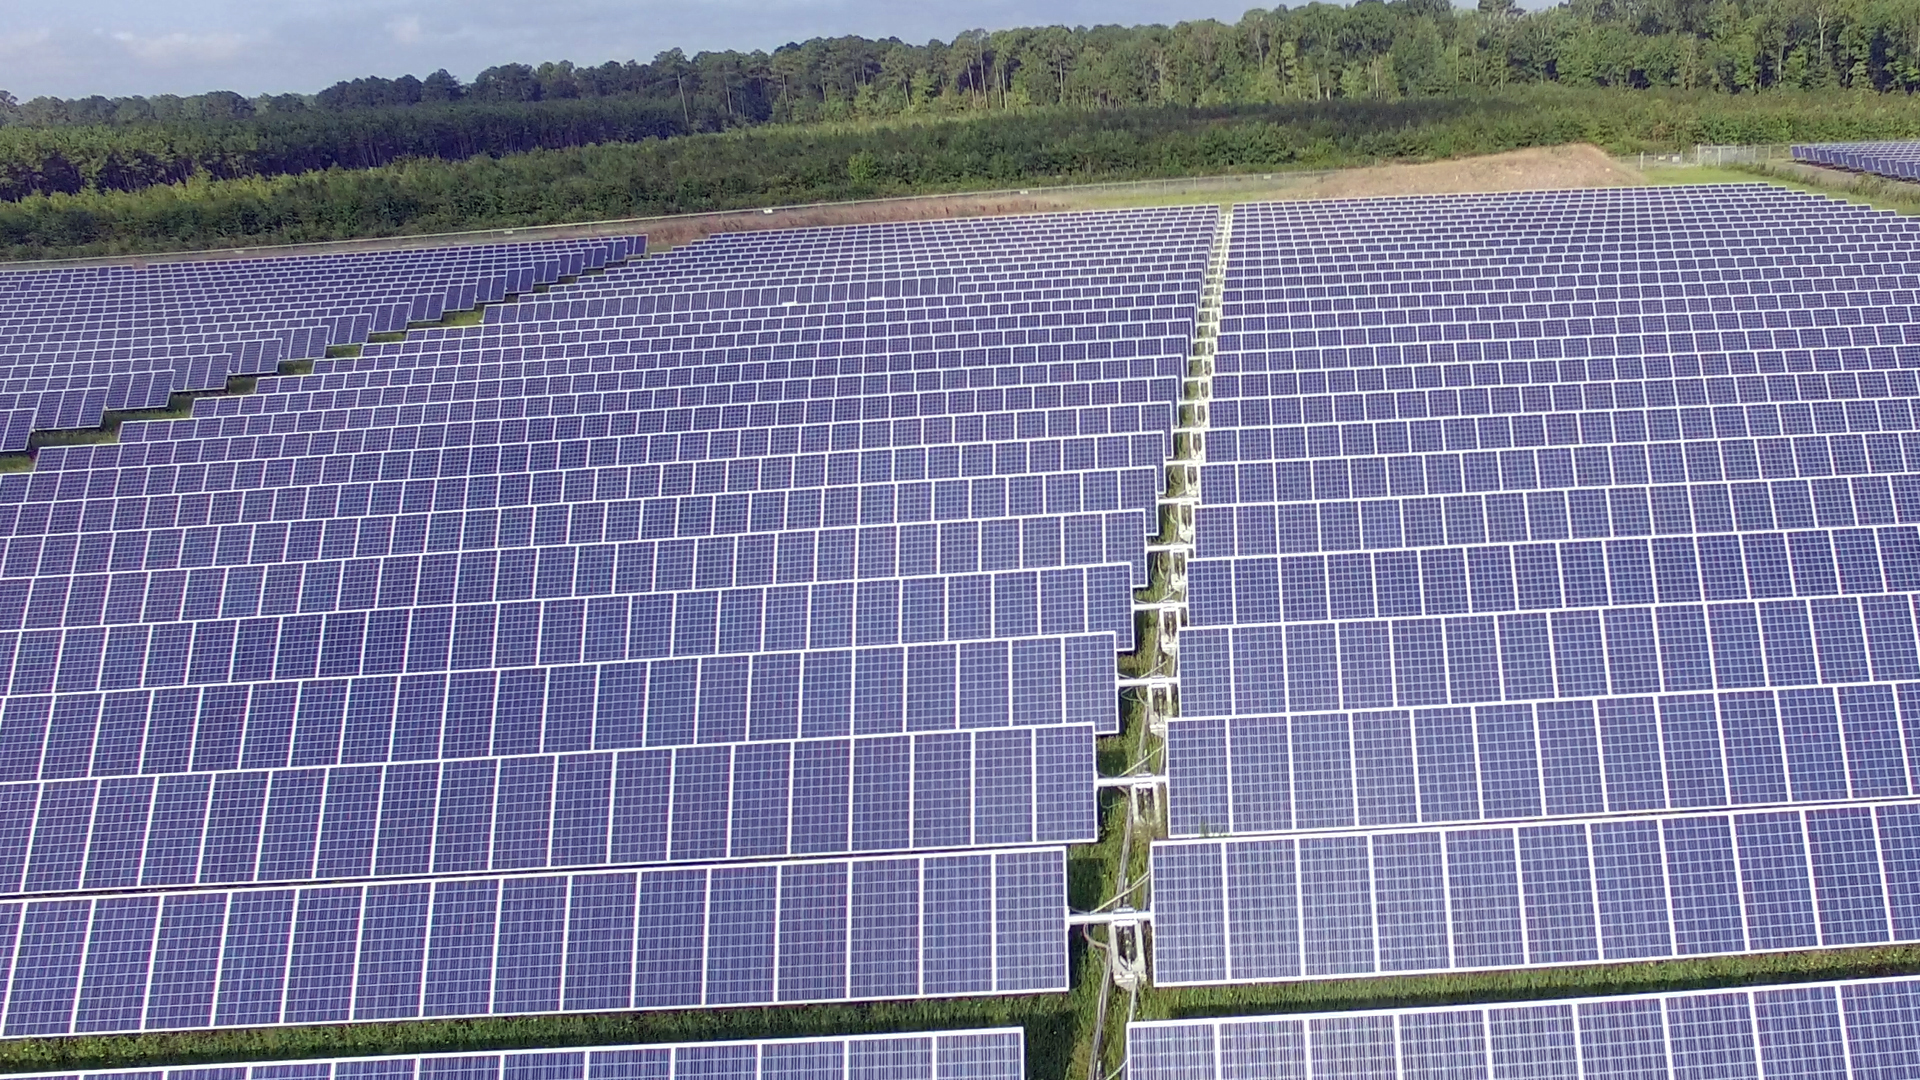 A PPA was signed  in order for Fifth Third to receive 100% renewable energy from the site, reaching one of the company's  five goals for environmental sustainability that was originally planned to be met by 2022. Image: Fifth Third